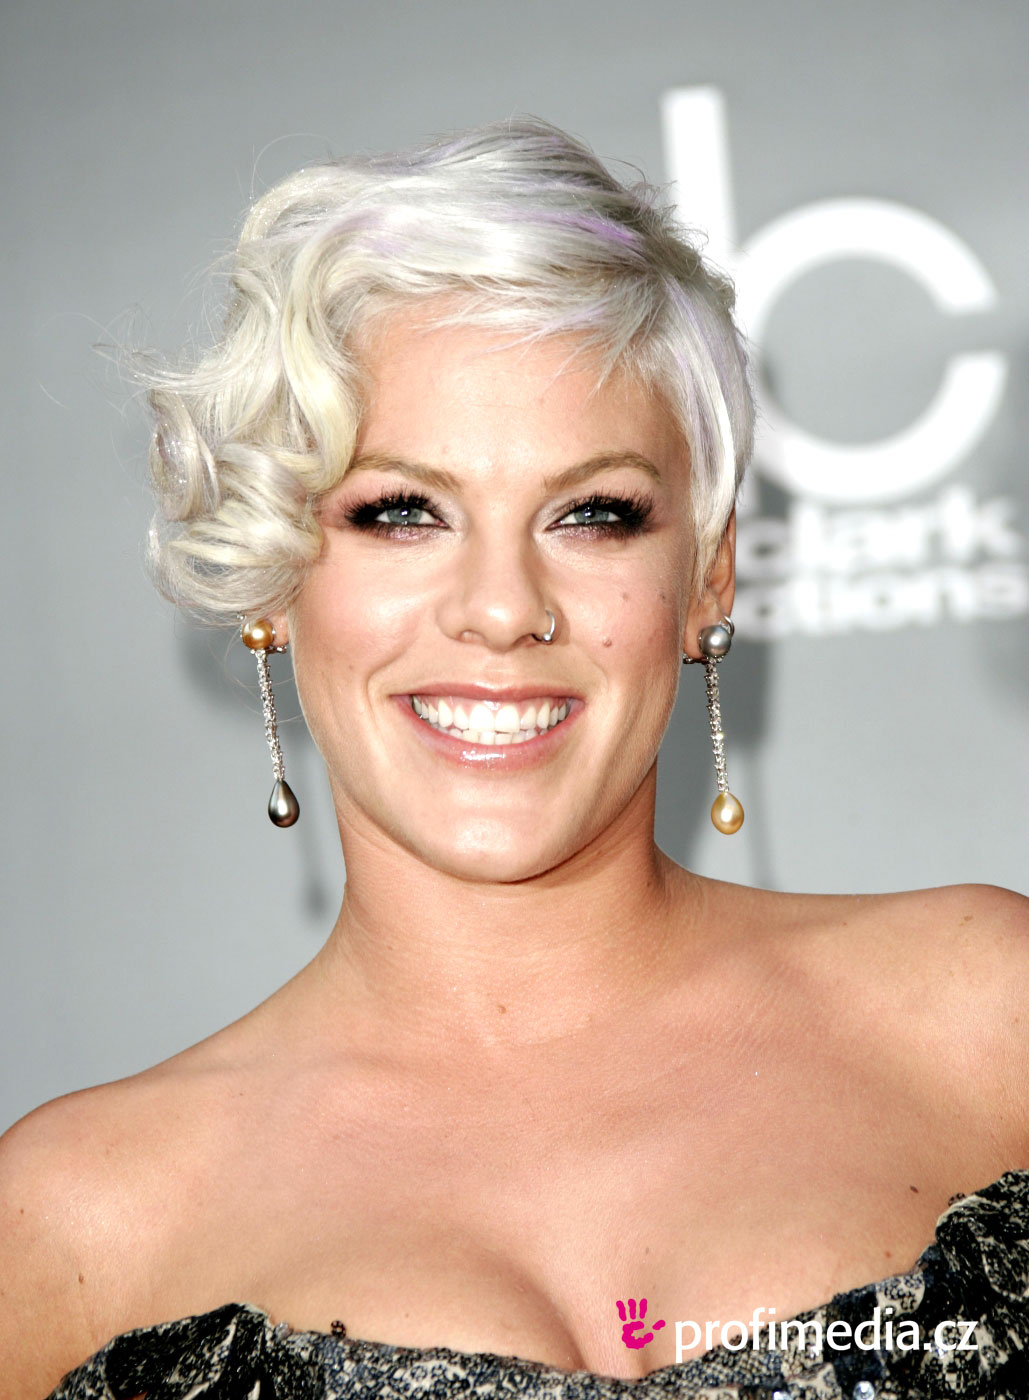 Pink - - hairstyle - easyHairStyler